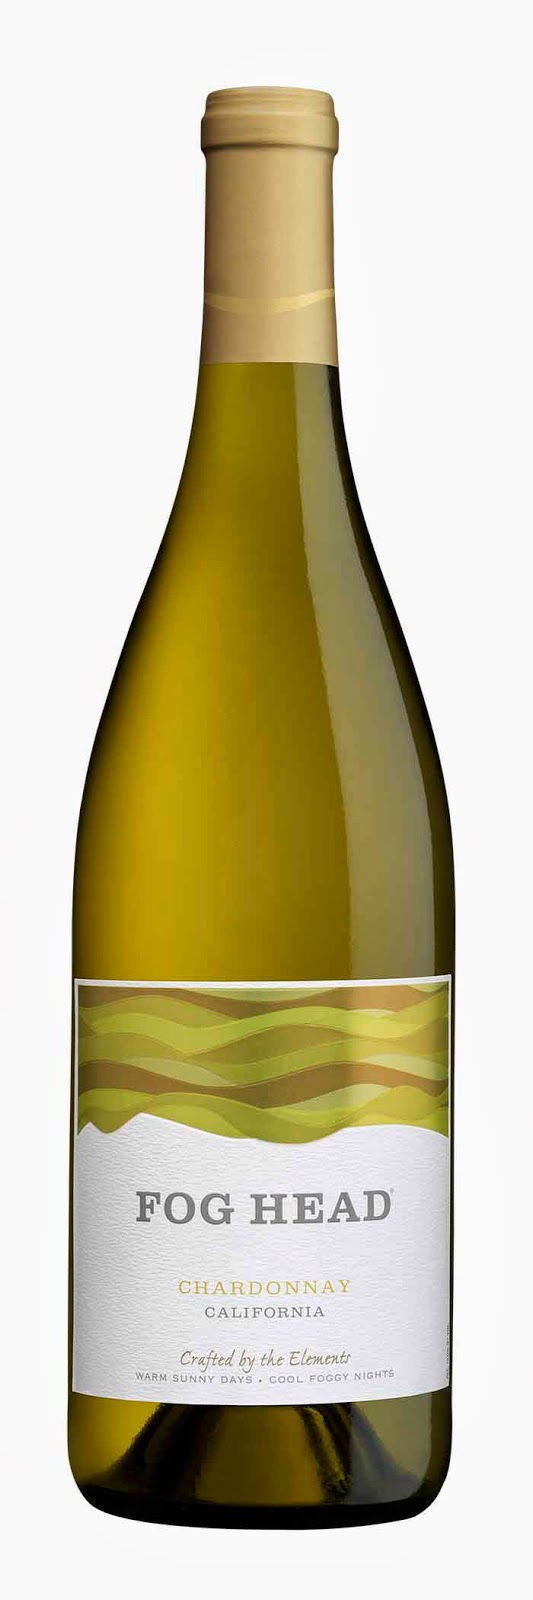 Fog Head Chardonnay 2012 California bottle